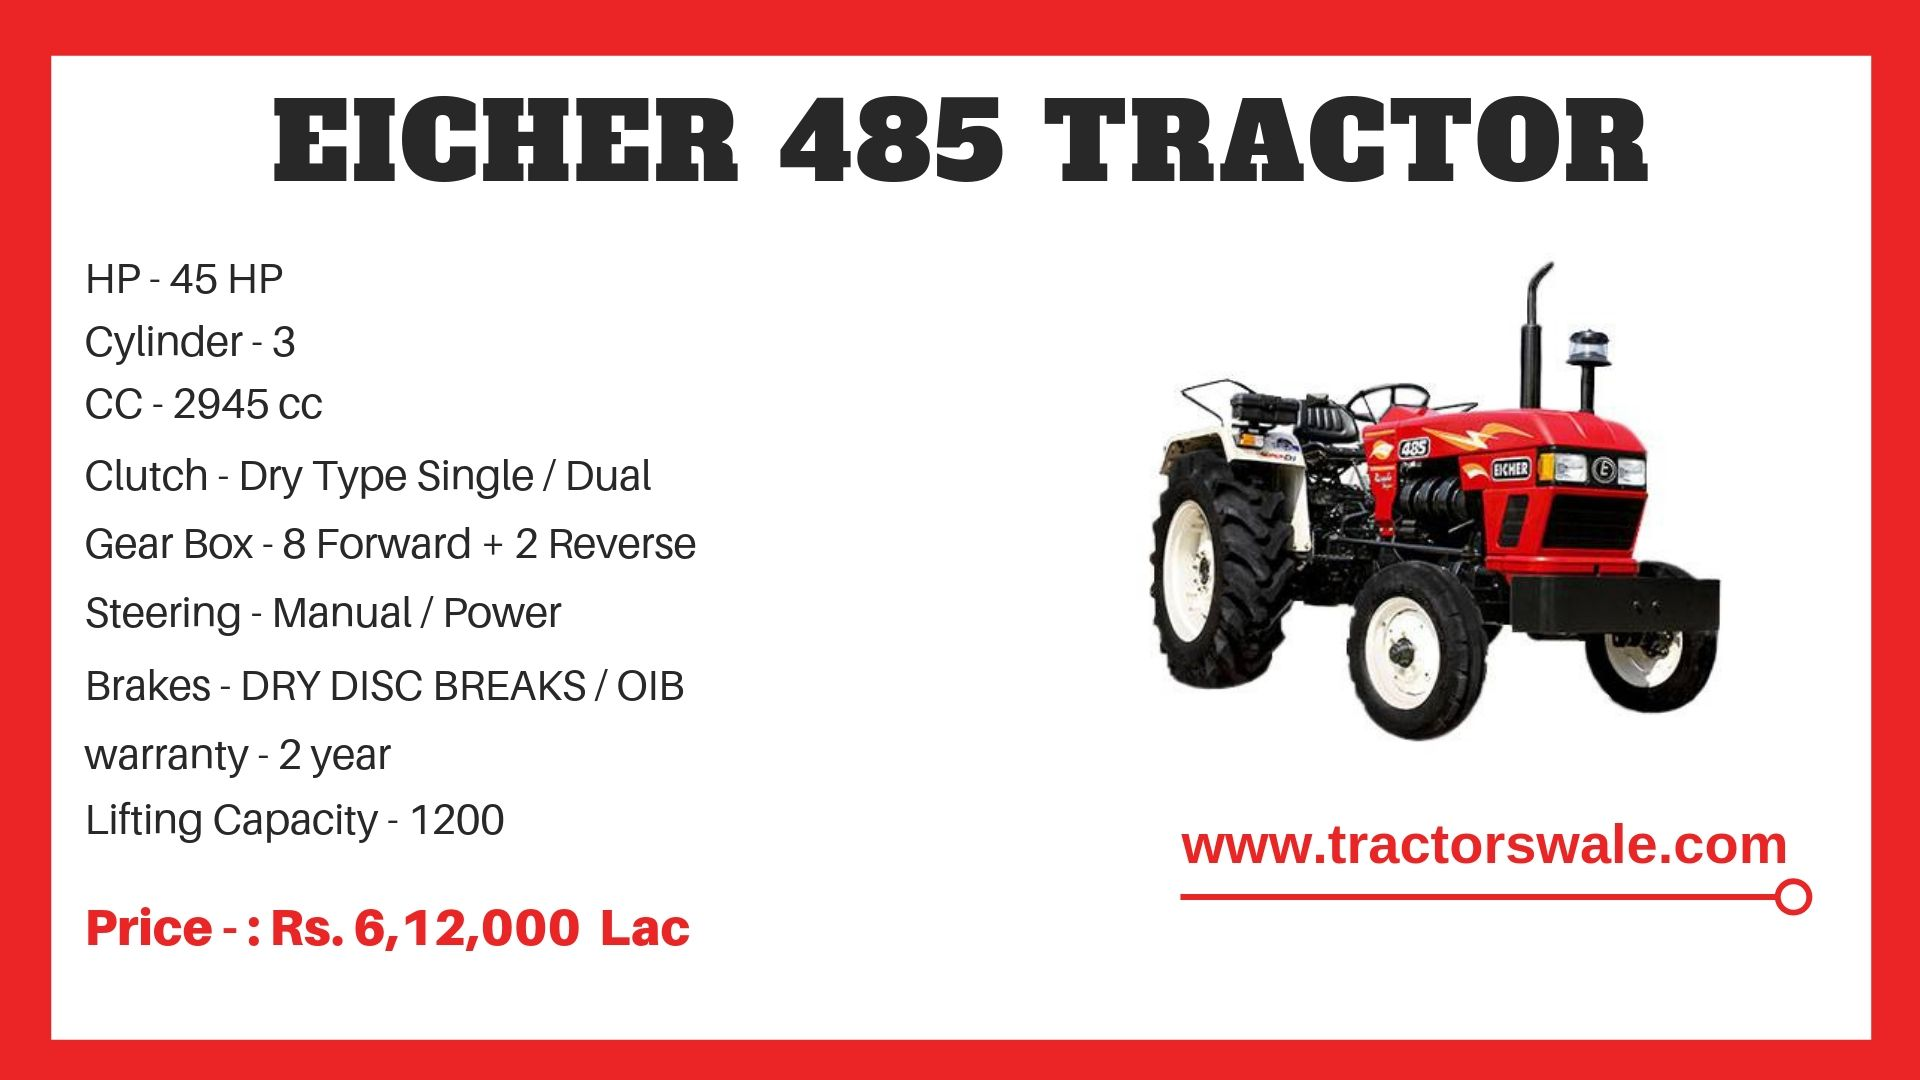 Eicher Tractor 485 Specifications